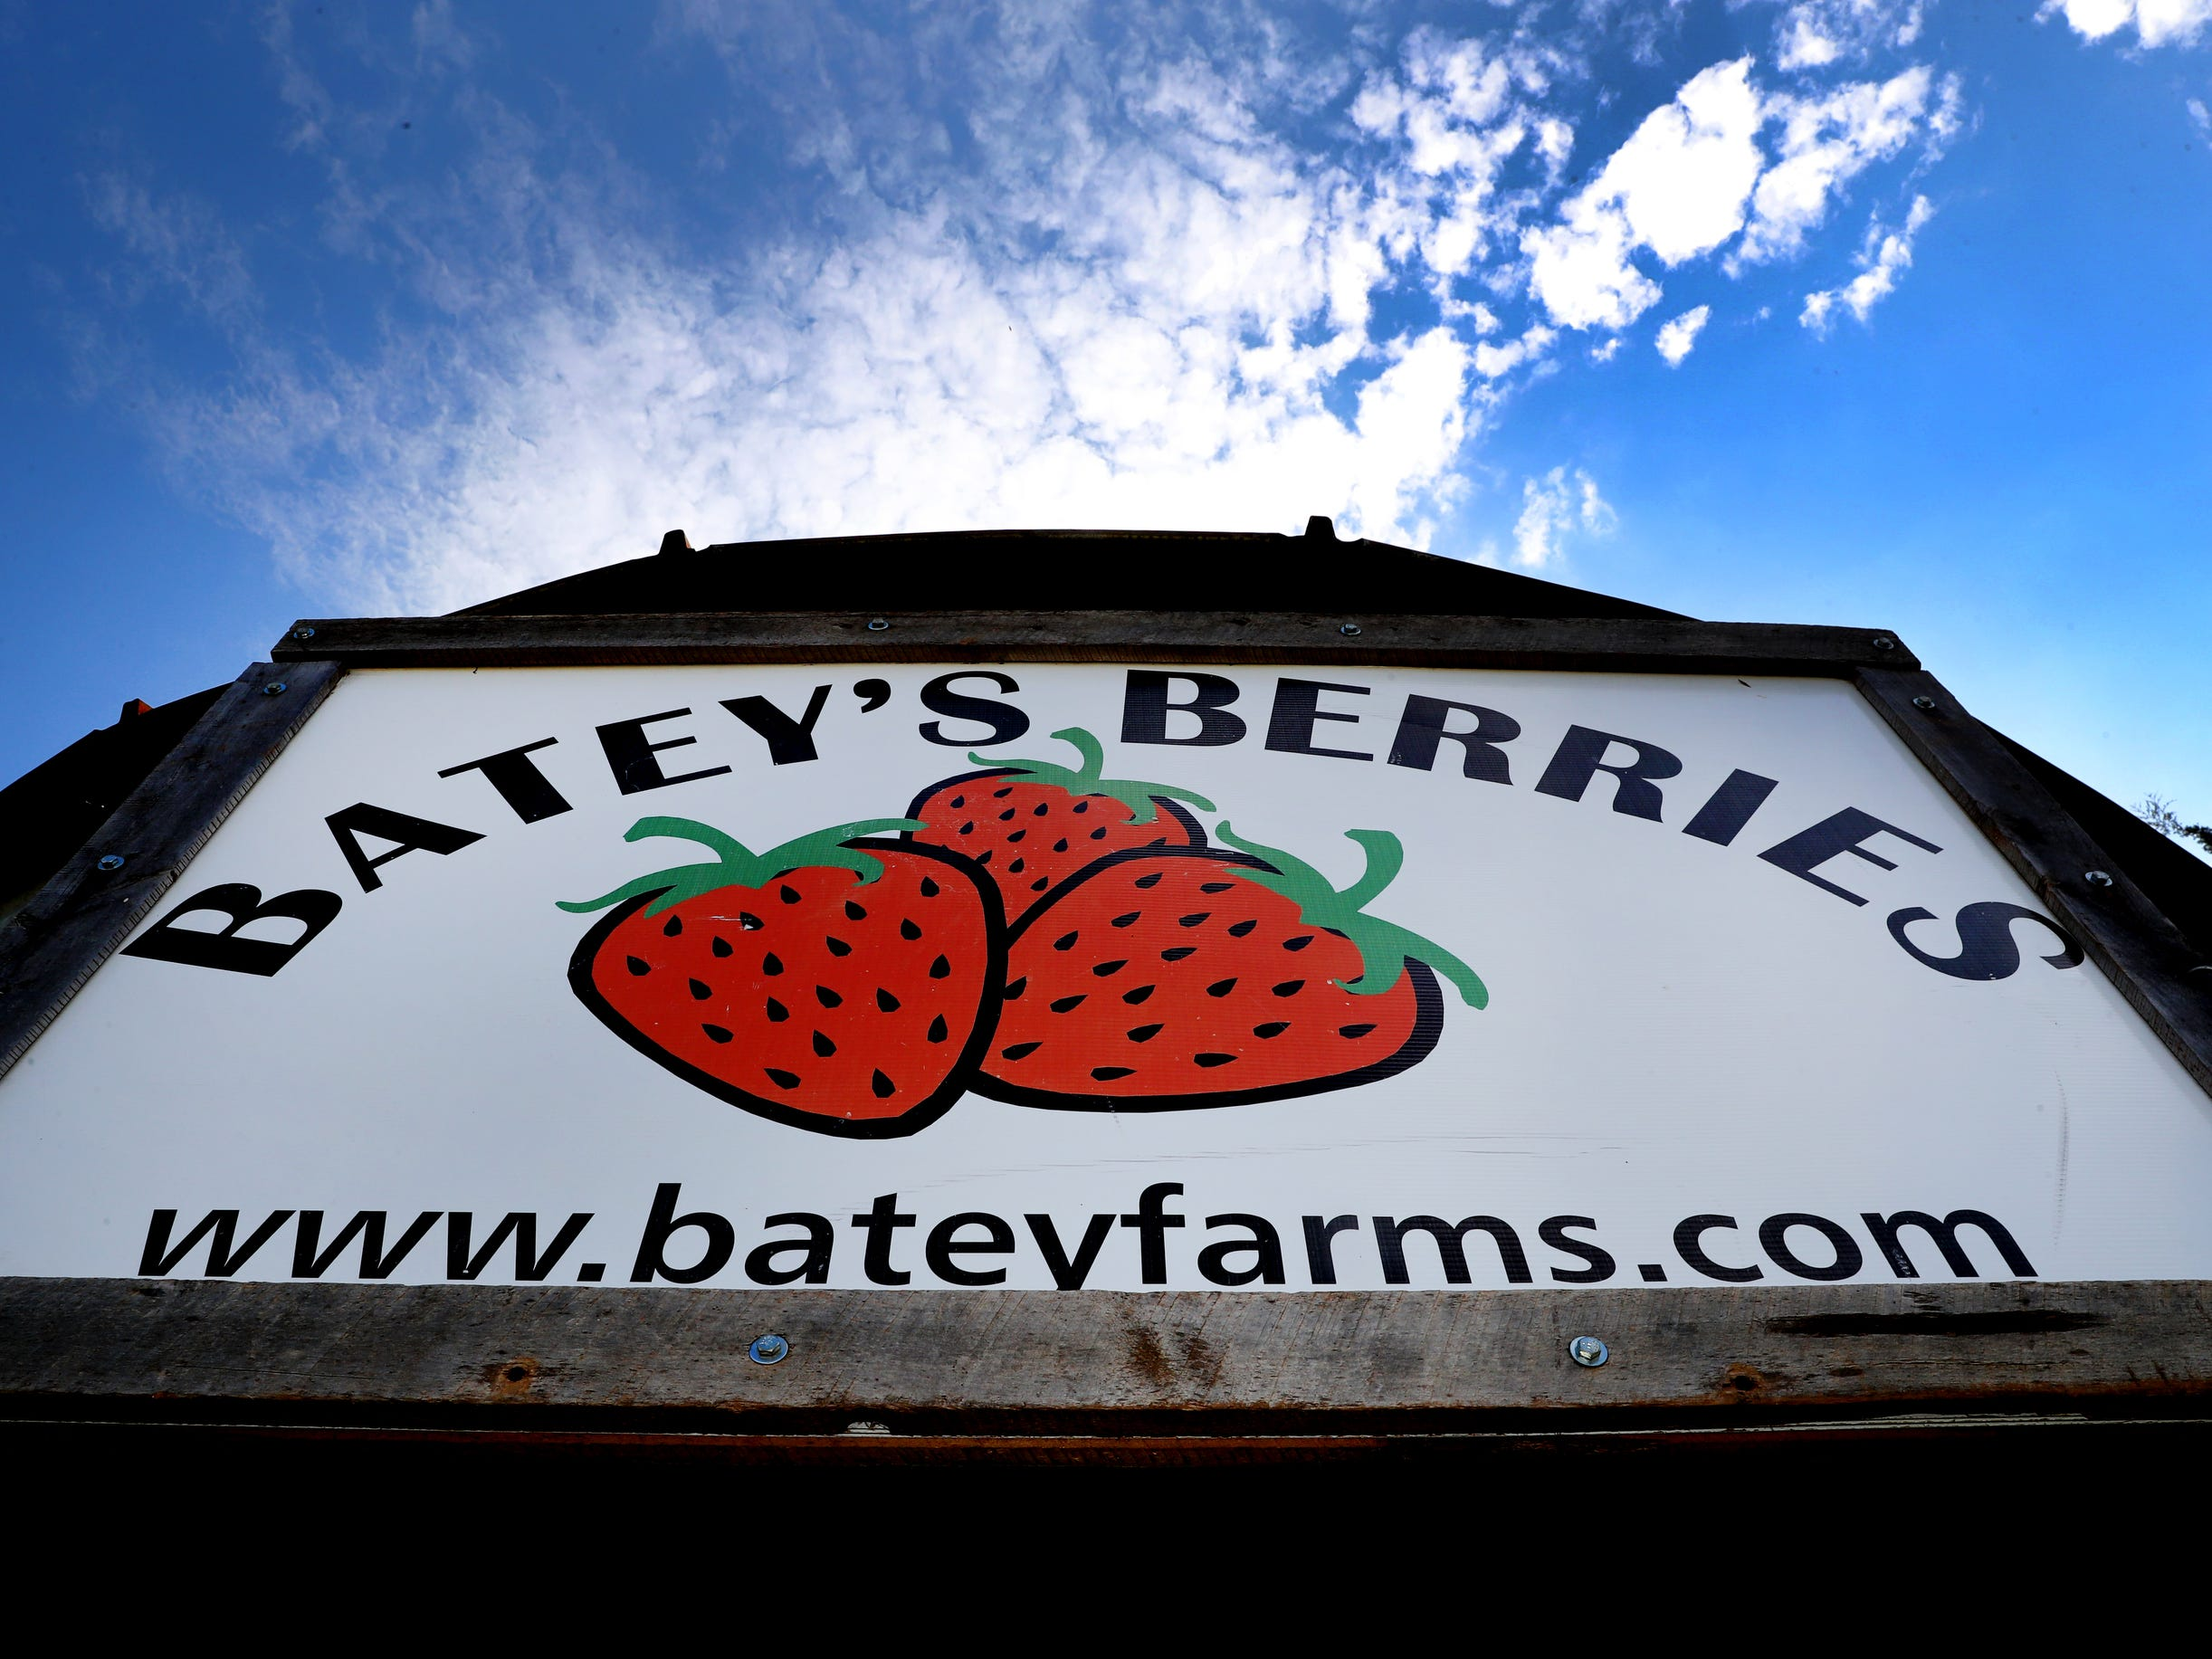 Batey Farms opened their strawberry patch on Tuesday April 23, 2019, at the 5331 Baker Road location in the Blackman area for the opportunity to pick your own strawberries or buy pre picked berries without the work.